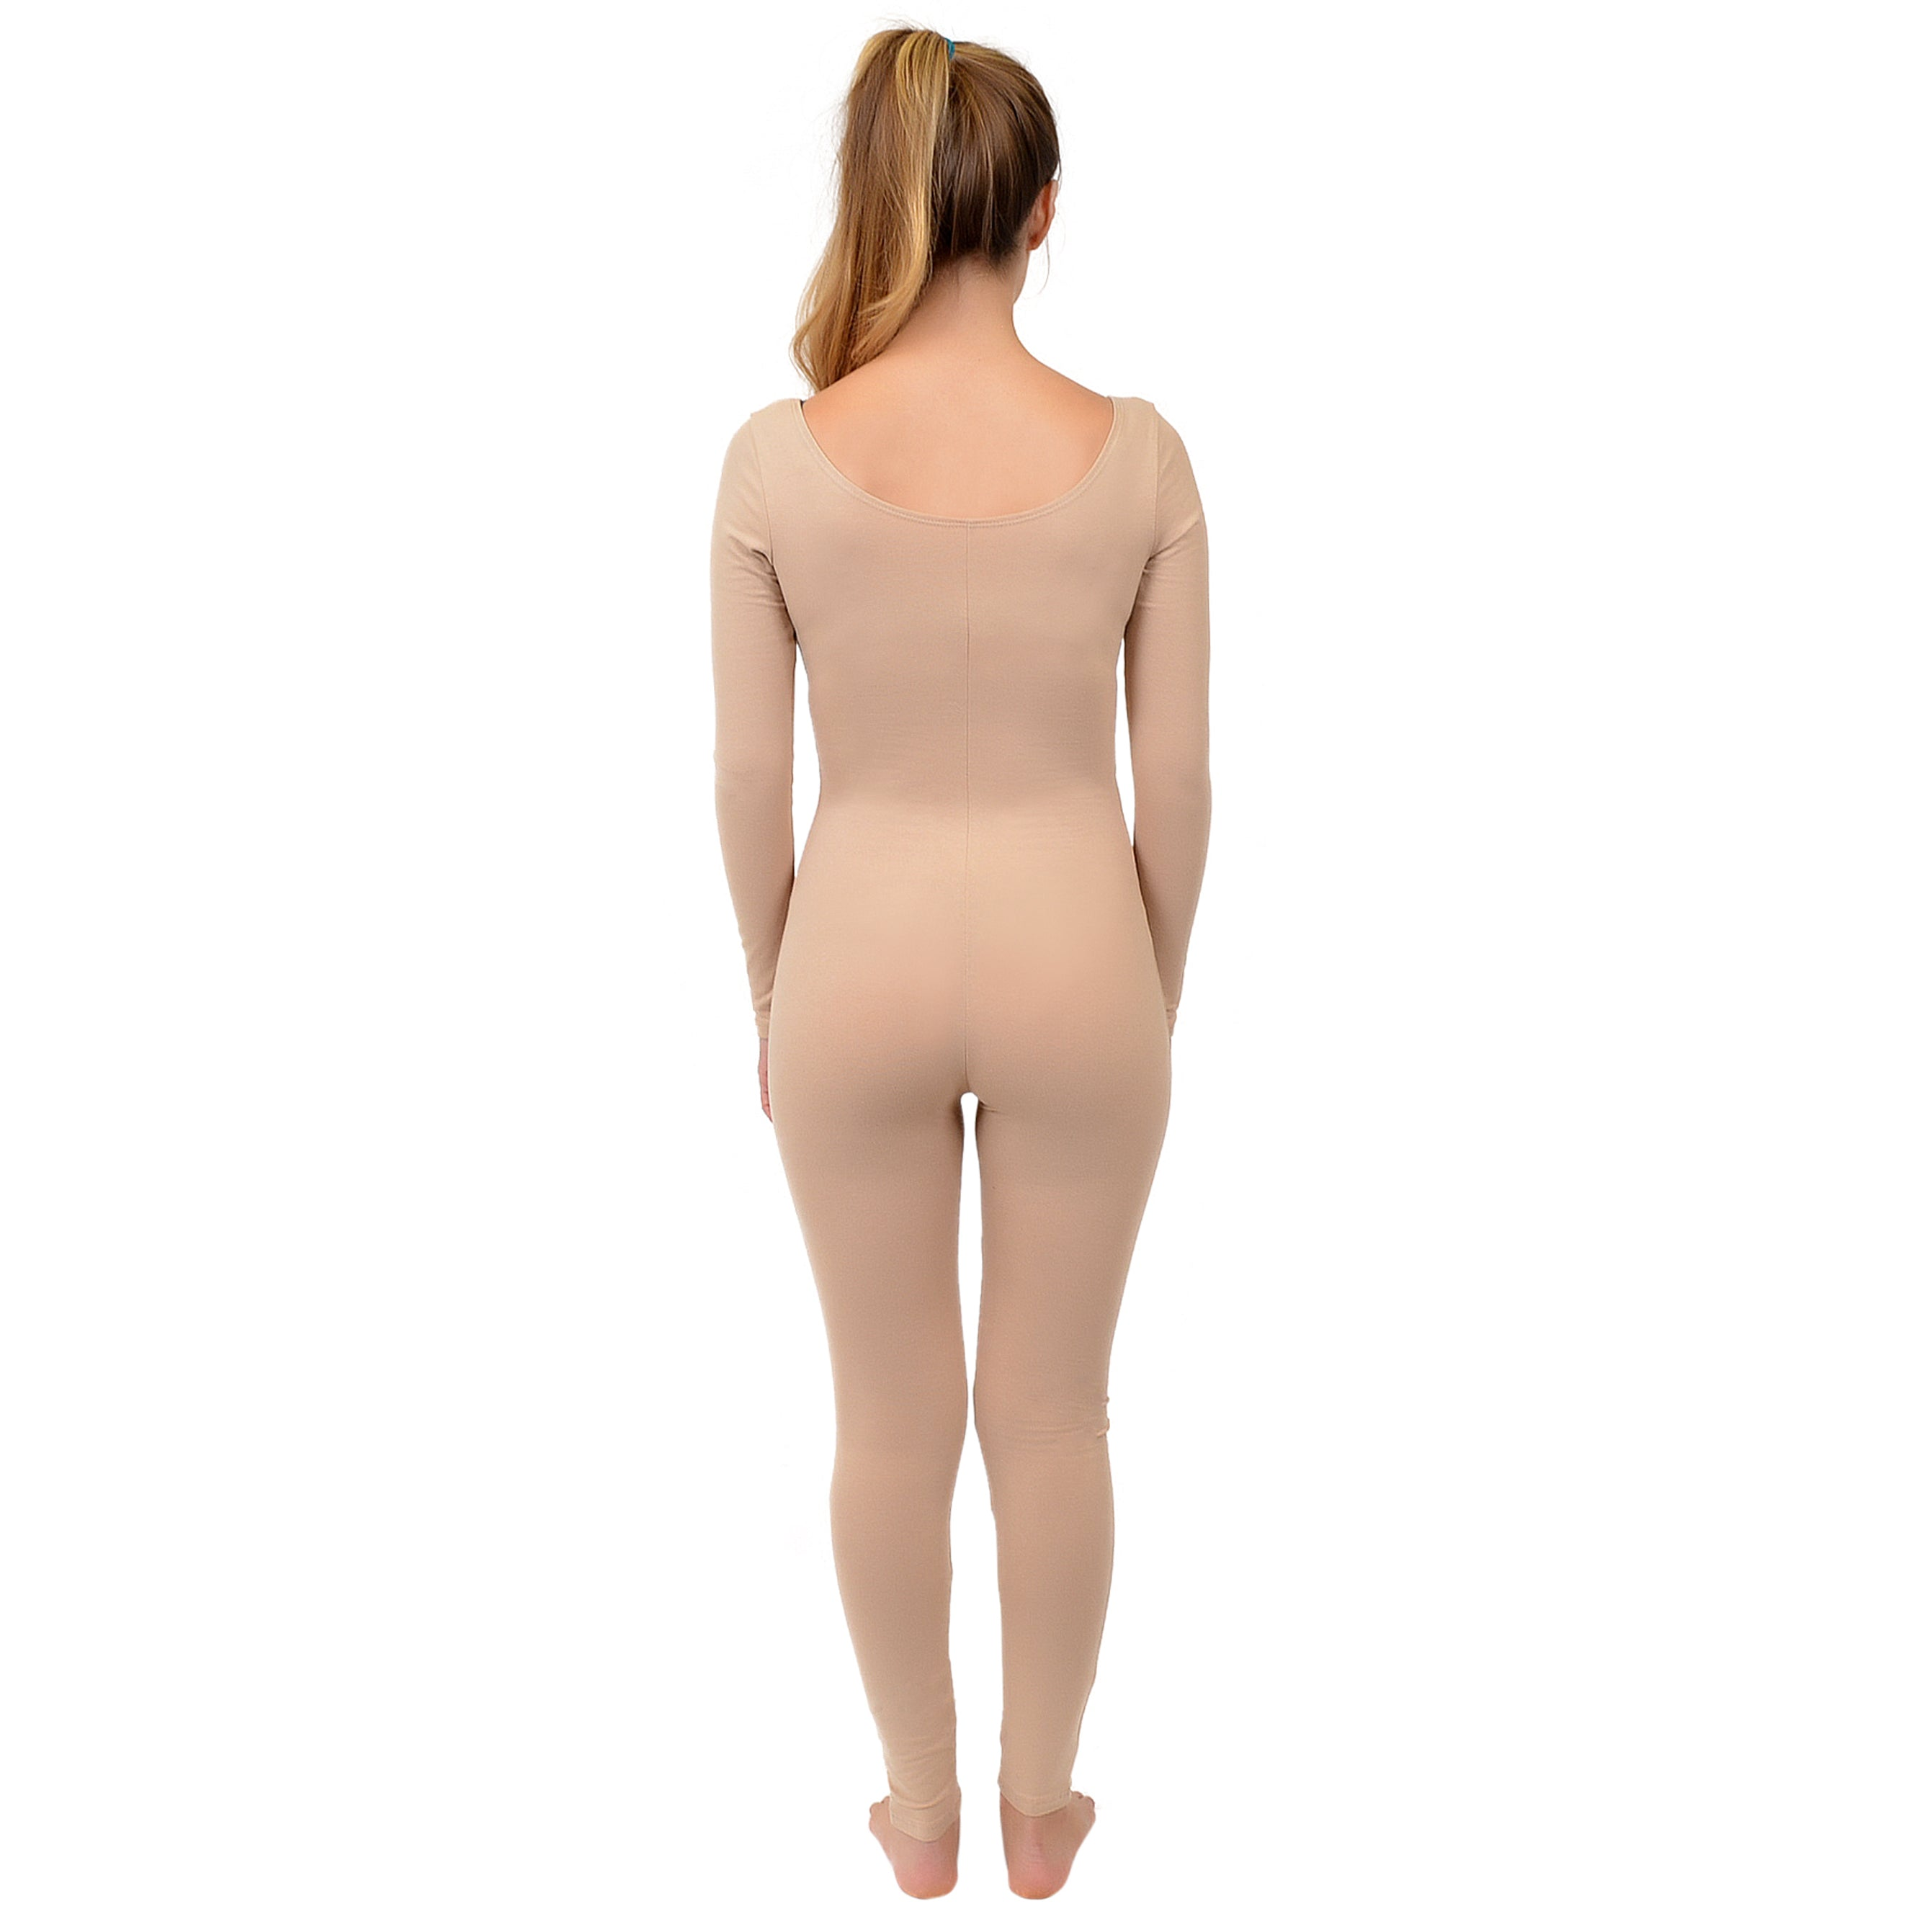 Women's COLOR Cotton Long Sleeve Unitard CUSTOM